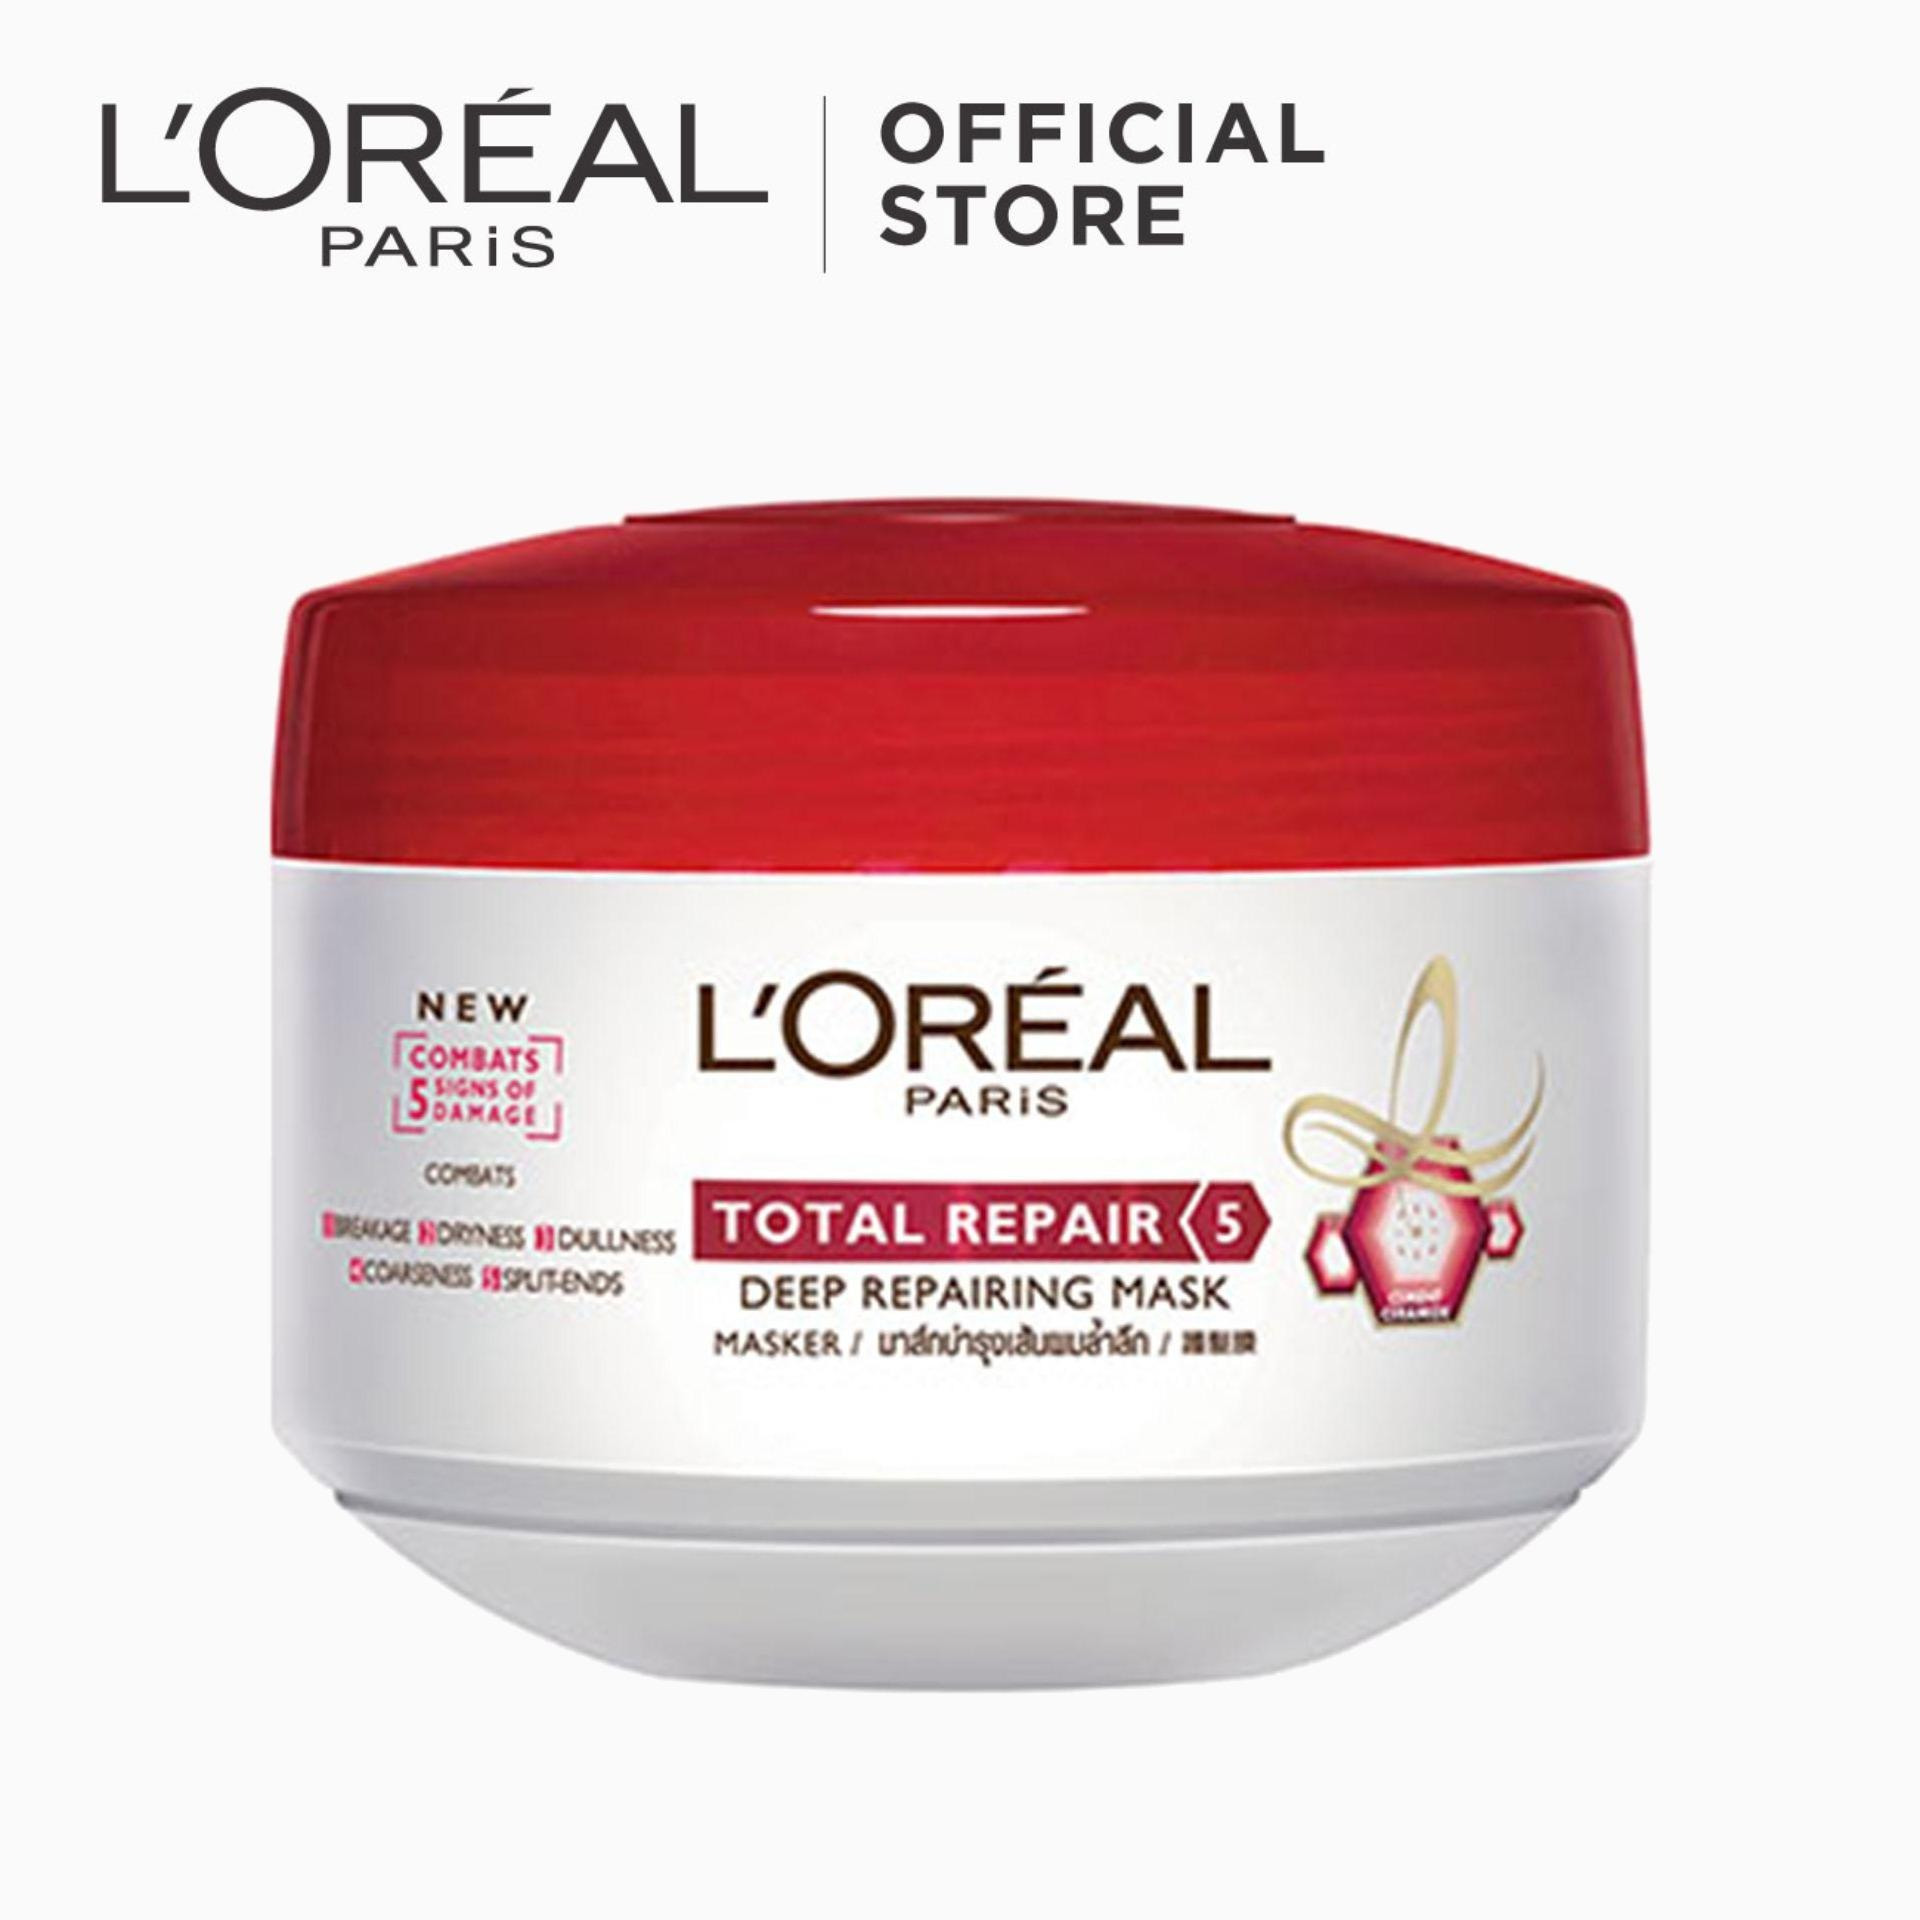 Total Repair 5 Mask 200ml By Loréal Paris Elseve By Loreal.